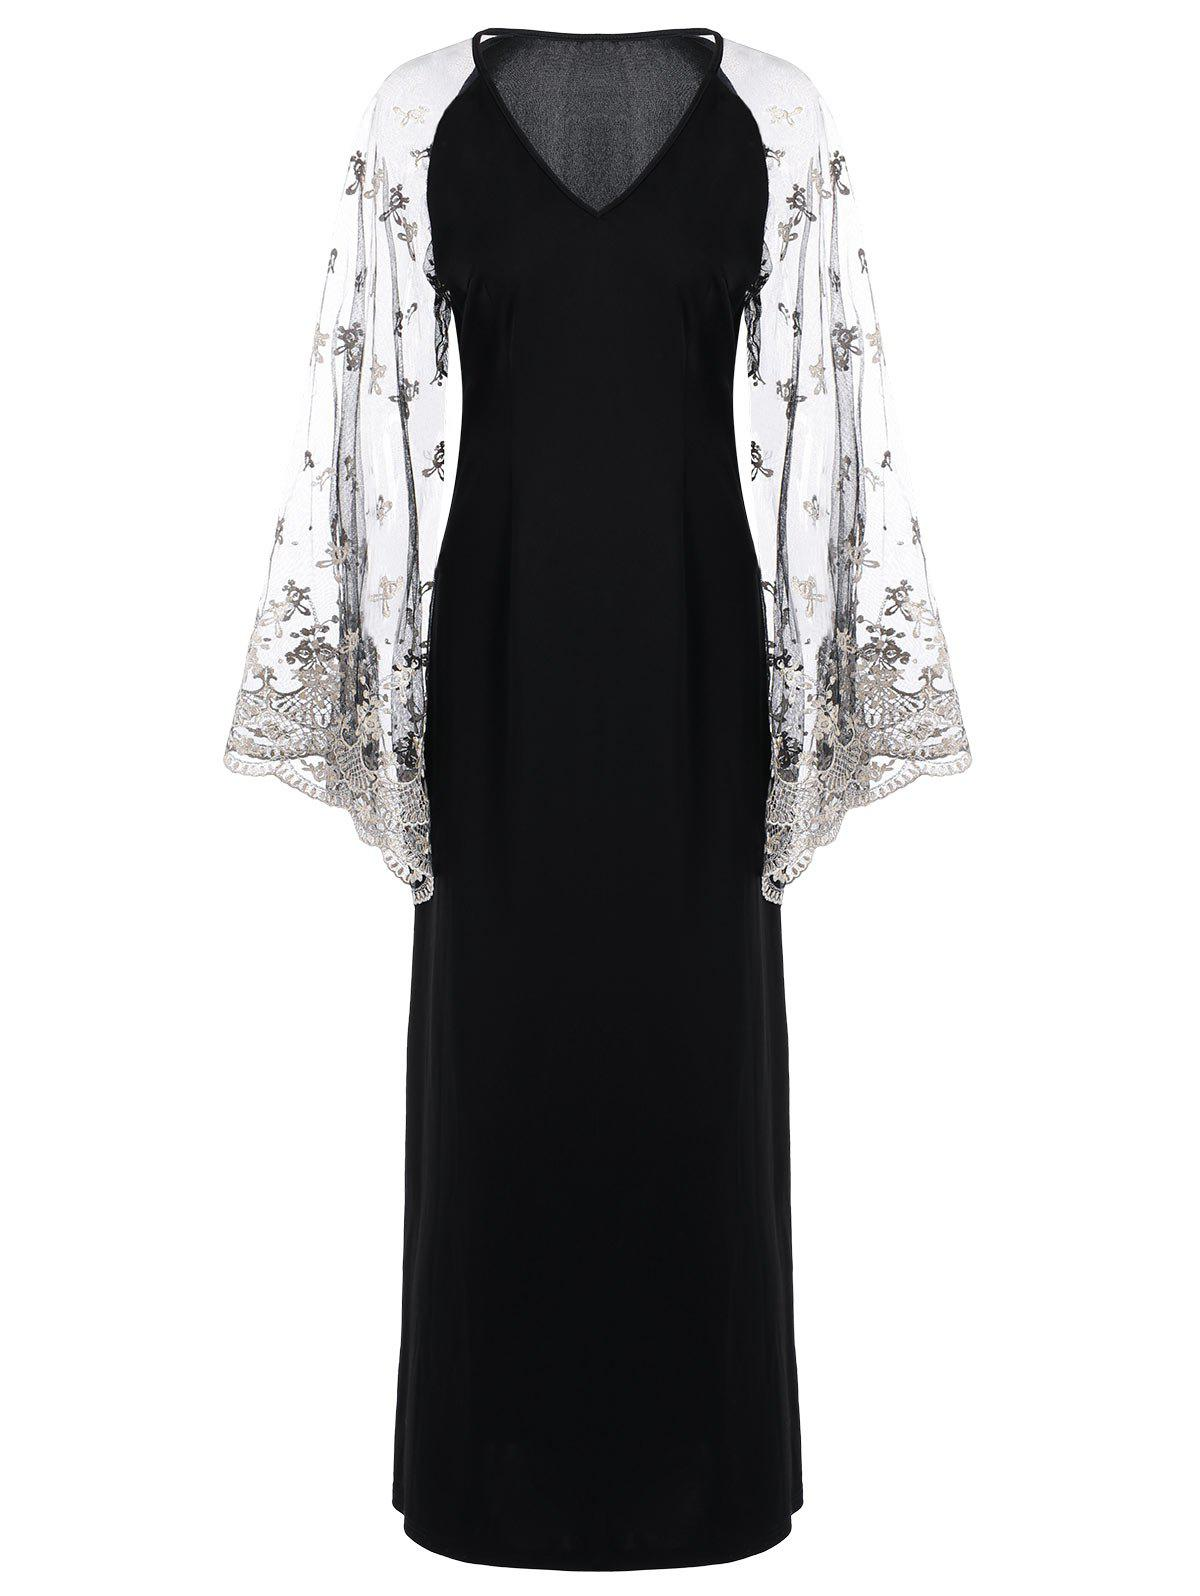 V Neck Flare Sleeve Maxi DressWOMEN<br><br>Size: L; Color: BLACK; Style: Novelty; Material: Polyester,Spandex; Silhouette: Straight; Dresses Length: Ankle-Length; Neckline: V-Neck; Sleeve Length: Long Sleeves; Embellishment: Lace; Pattern Type: Others; With Belt: No; Season: Fall,Spring; Weight: 0.4700kg; Package Contents: 1 x Dress;